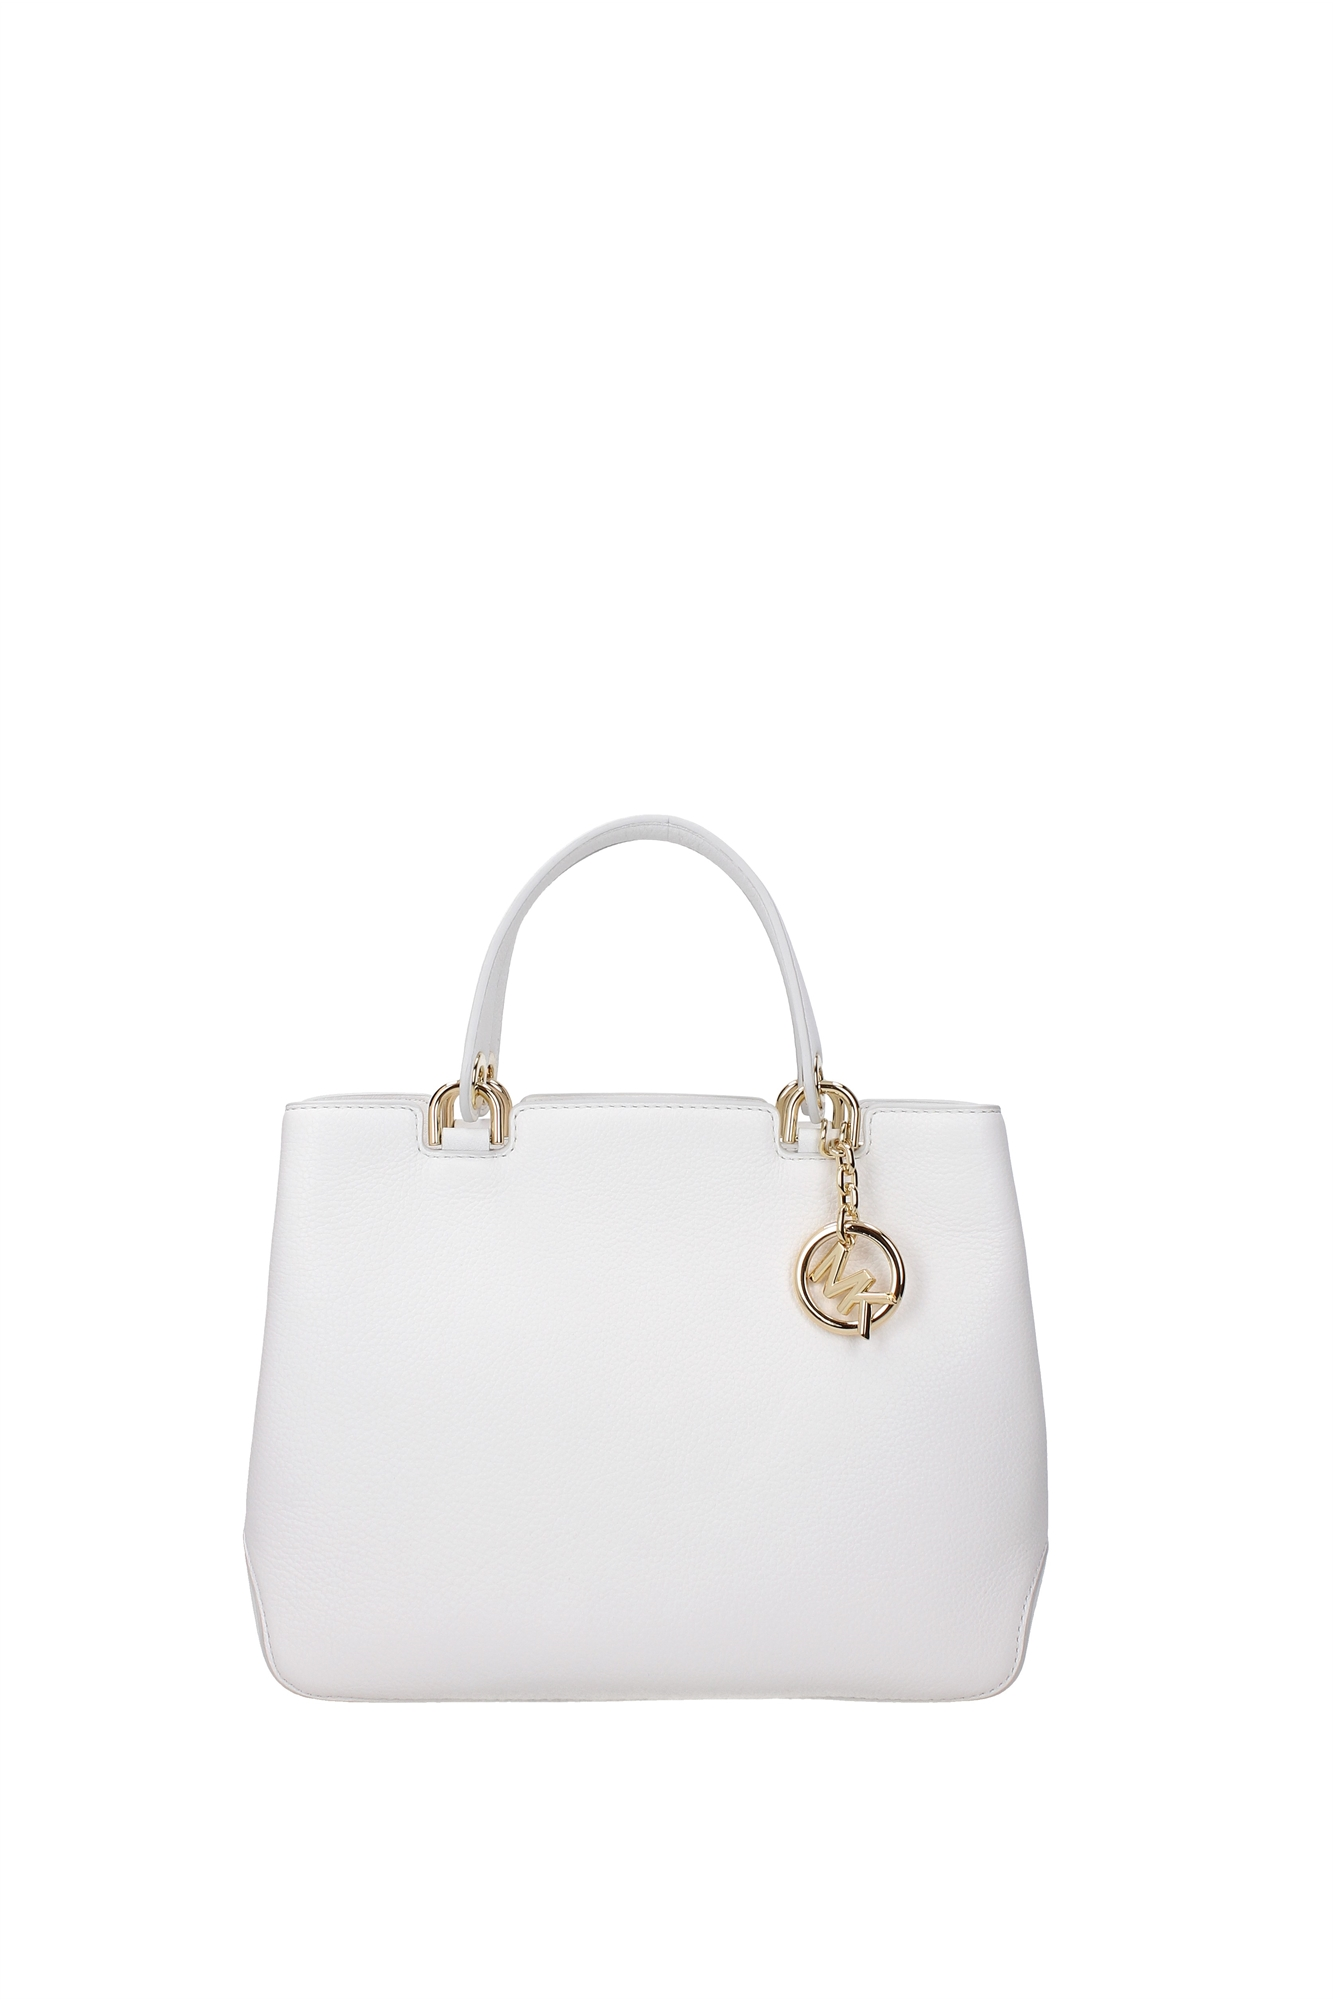 Hand Bags Michael Kors Women Leather White